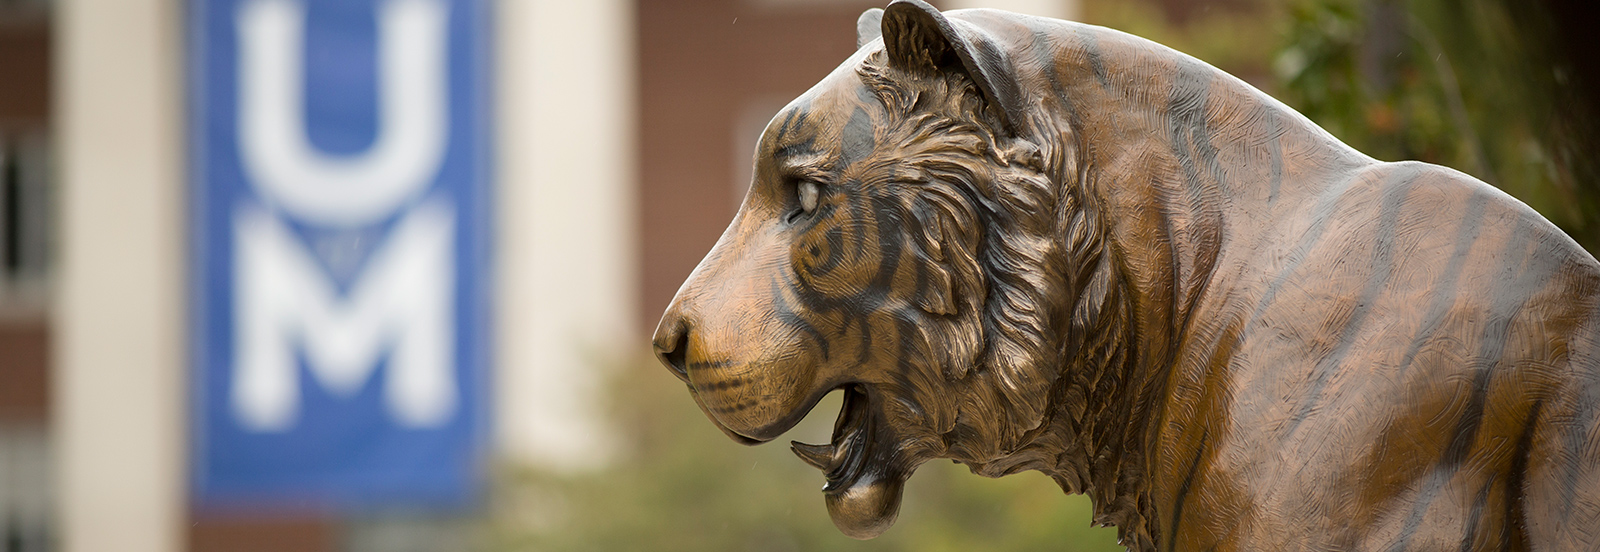 bronze tiger statue with UofM banner in background